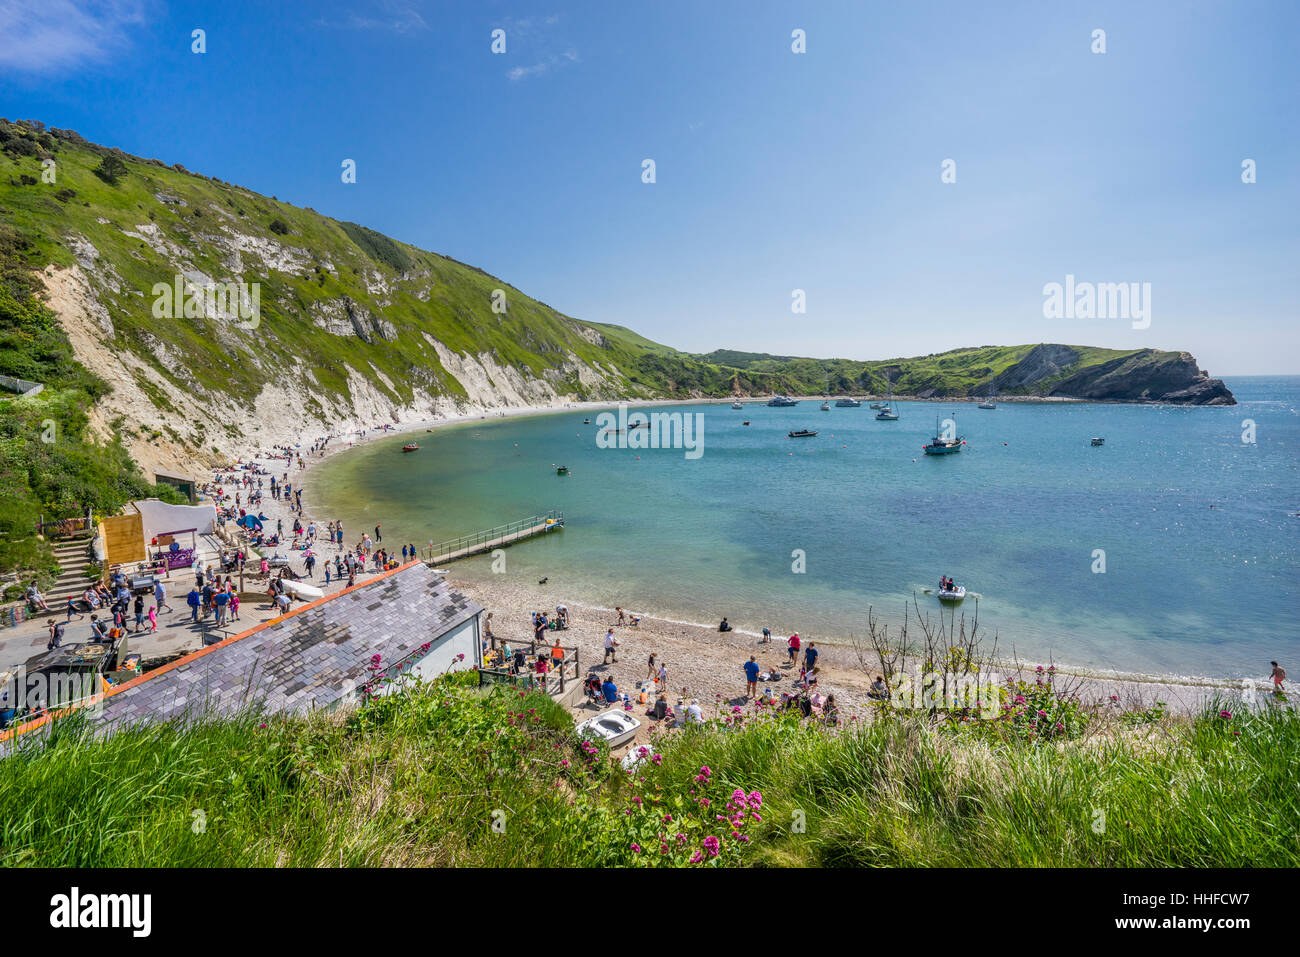 Great Britain, South West England, Dorset, Jurassic Coast, chalk cliffs  at Lulworth Cove - Stock Image